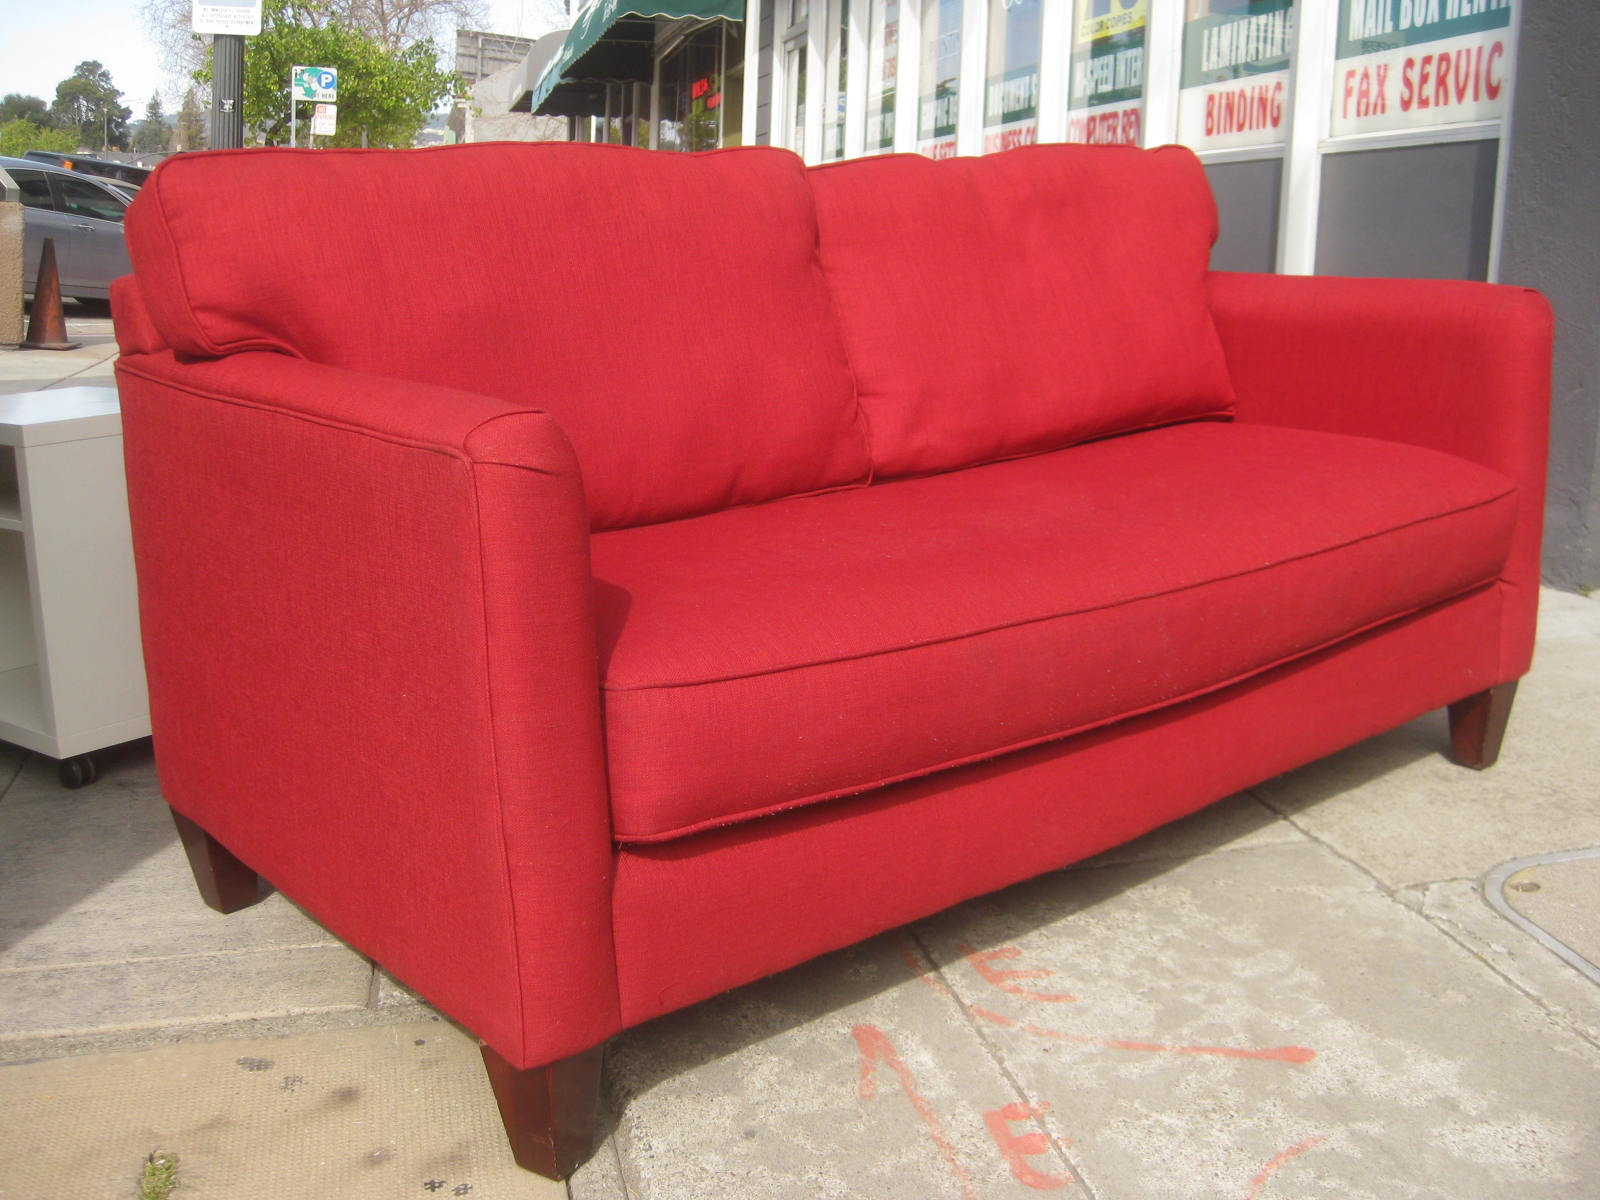 UHURU FURNITURE & COLLECTIBLES SOLD Bauhaus Red Sofa $320